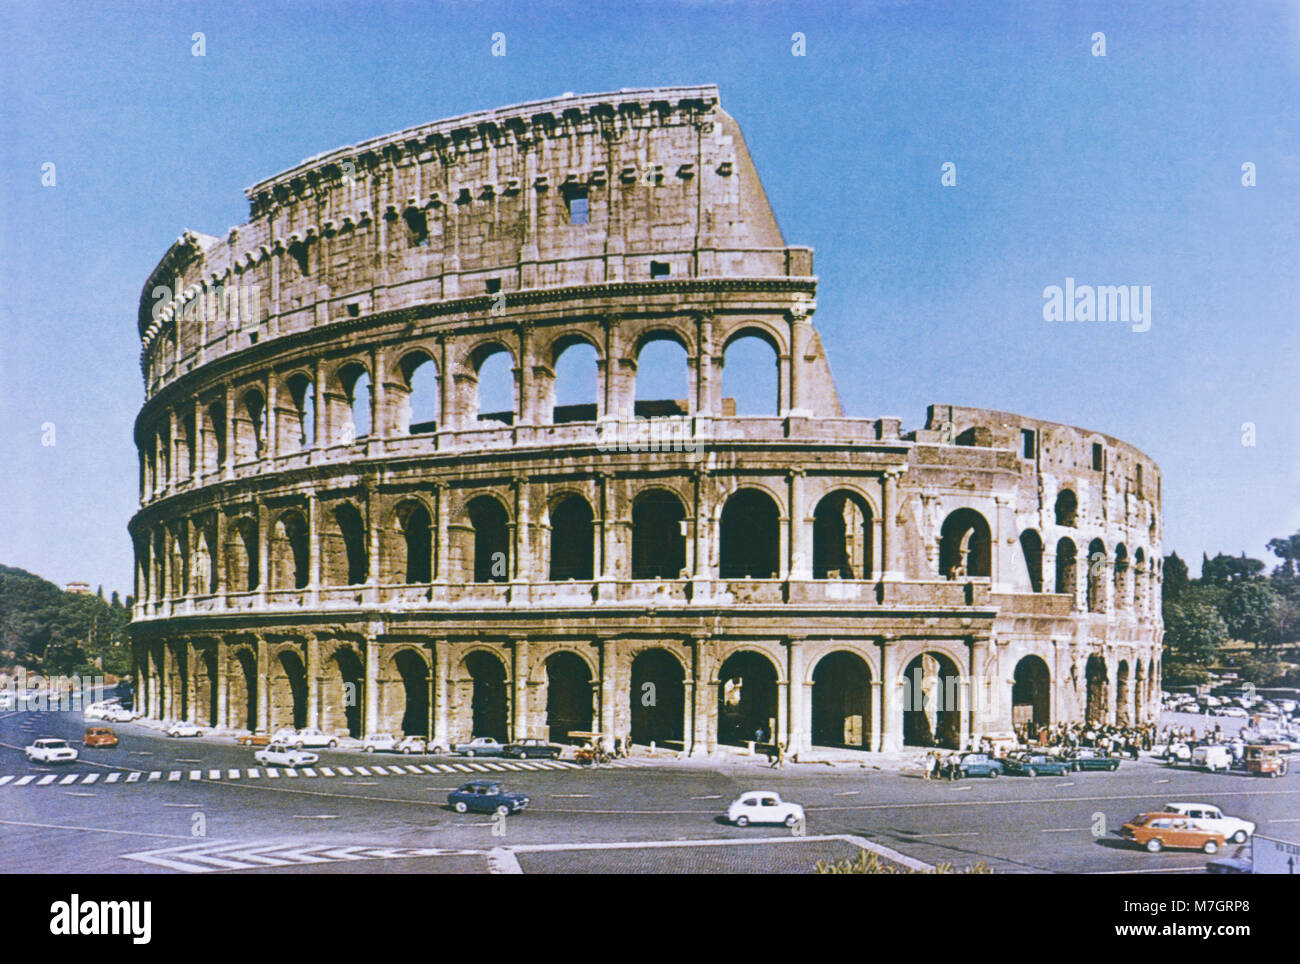 Facade of the Colosseum in Rome taken in the late 1960's - Stock Image